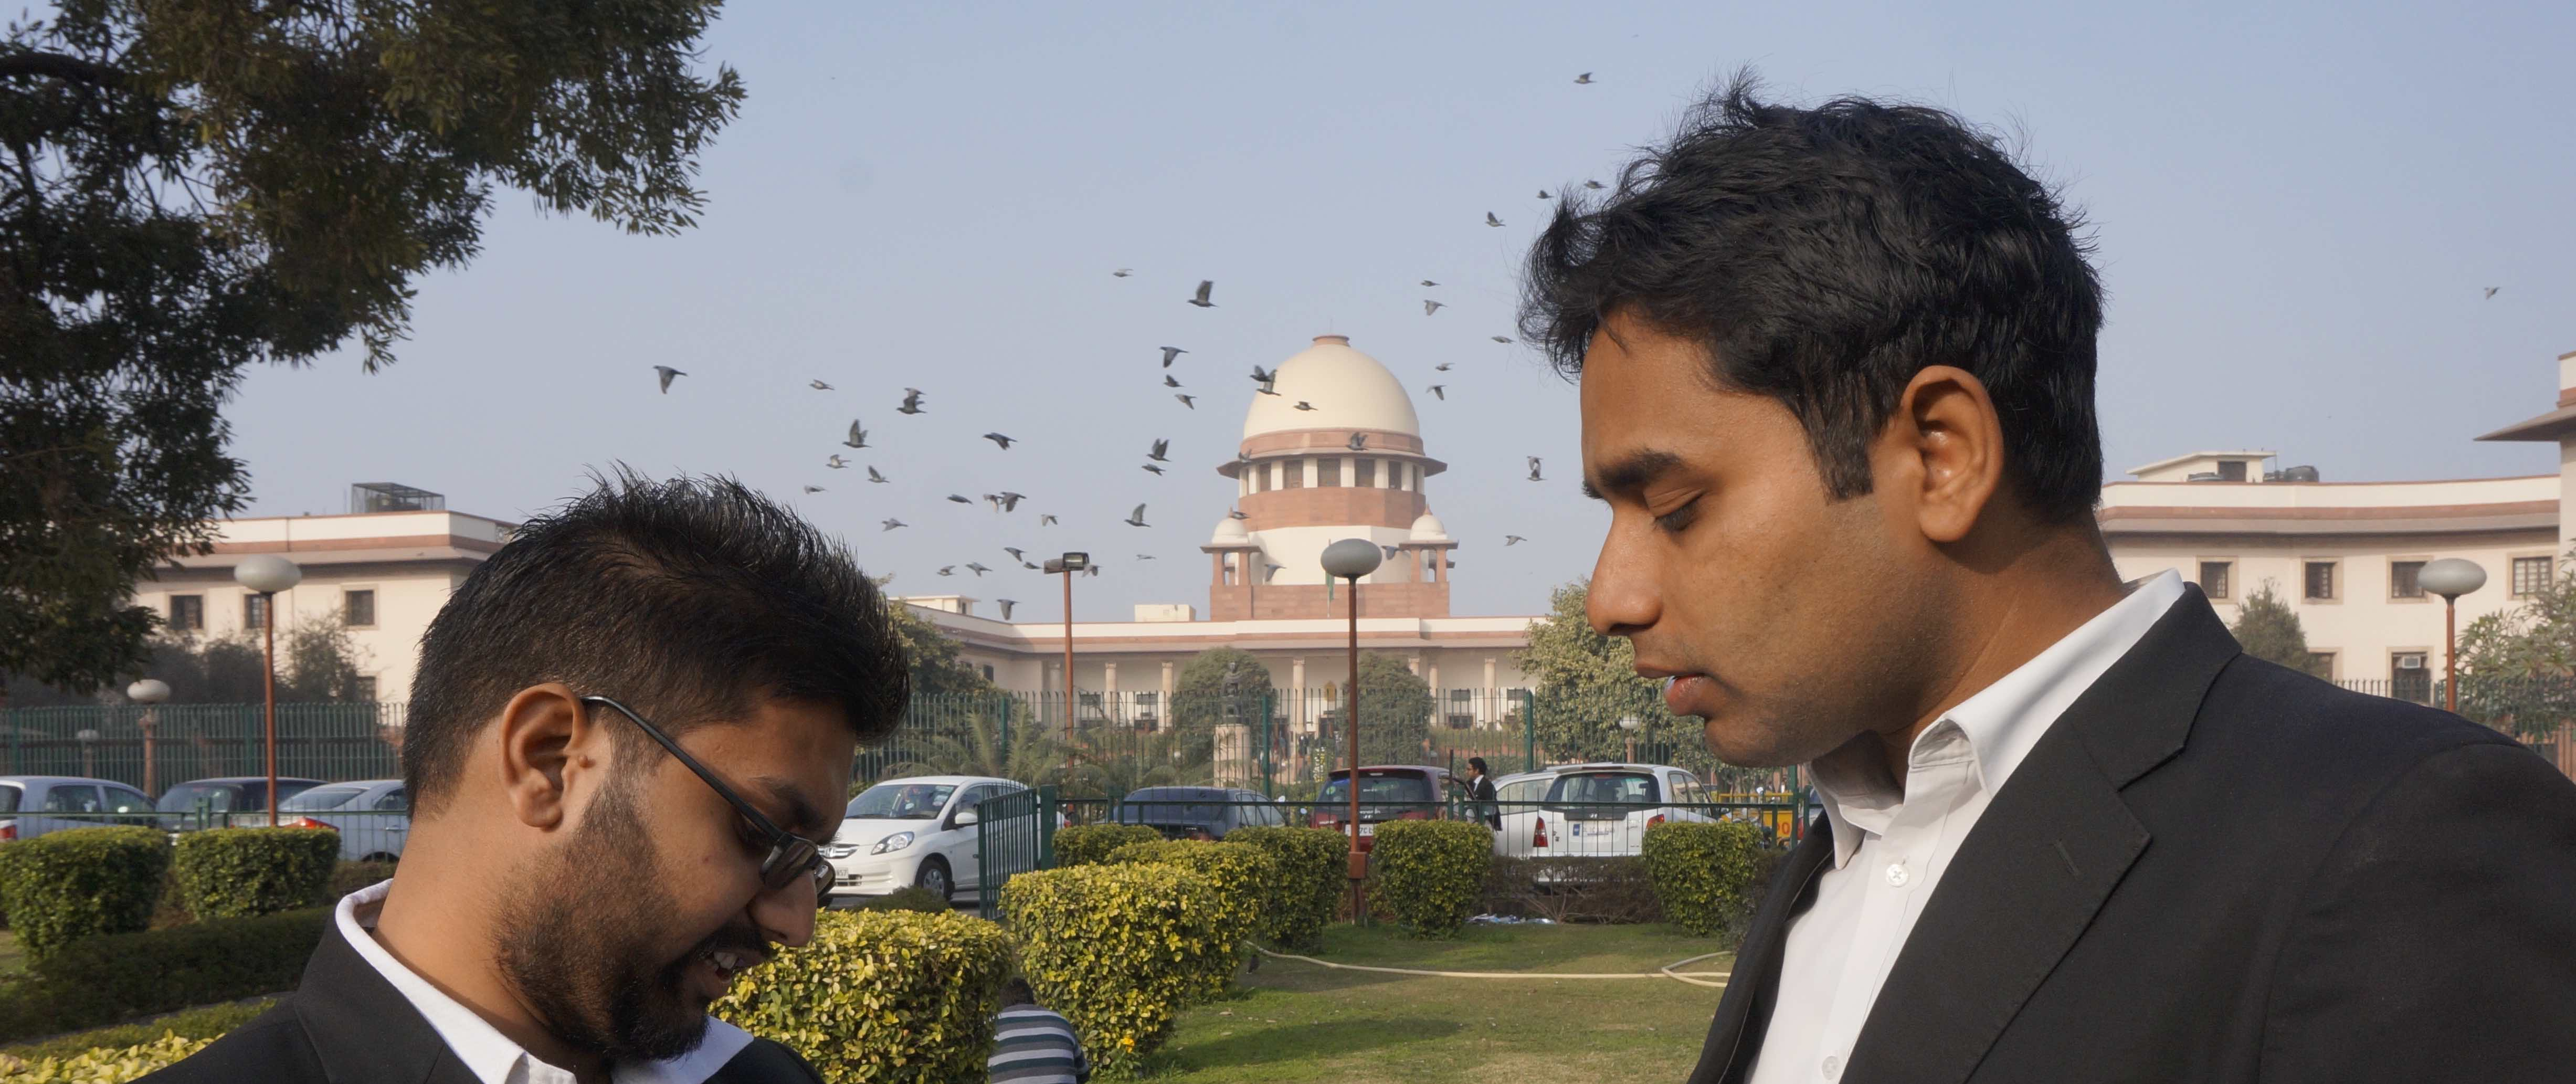 Resolving the 'Standoff' Over Judicial Appointments Will Take Two to Tango